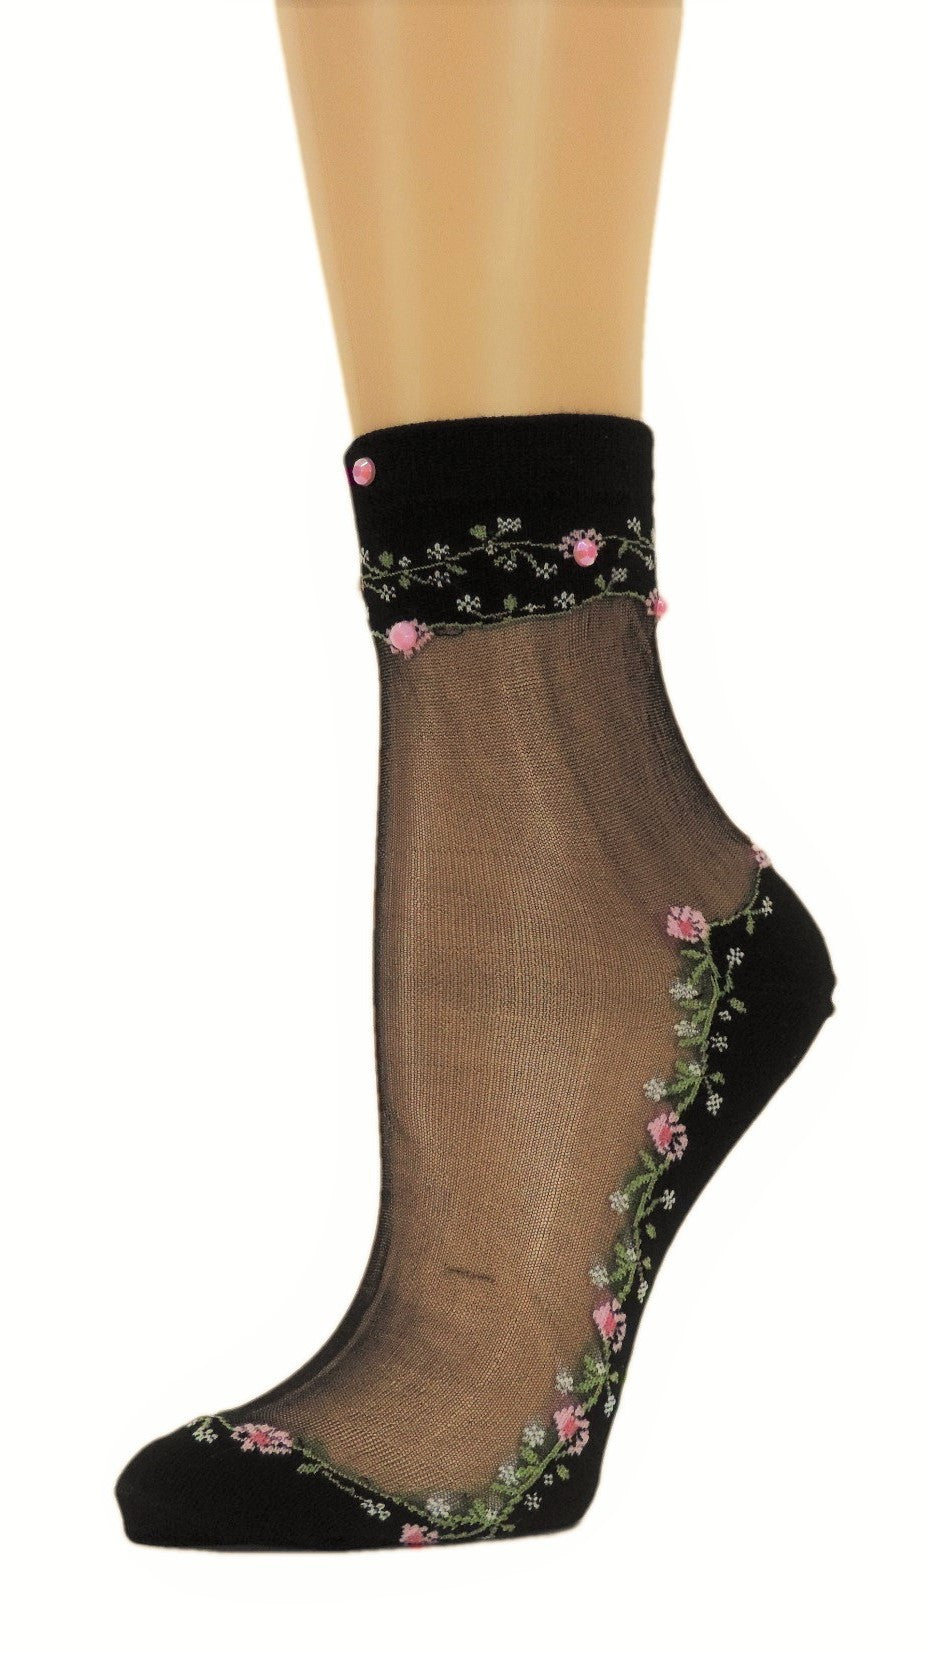 Spring Flowers Custom Sheer Socks with beads